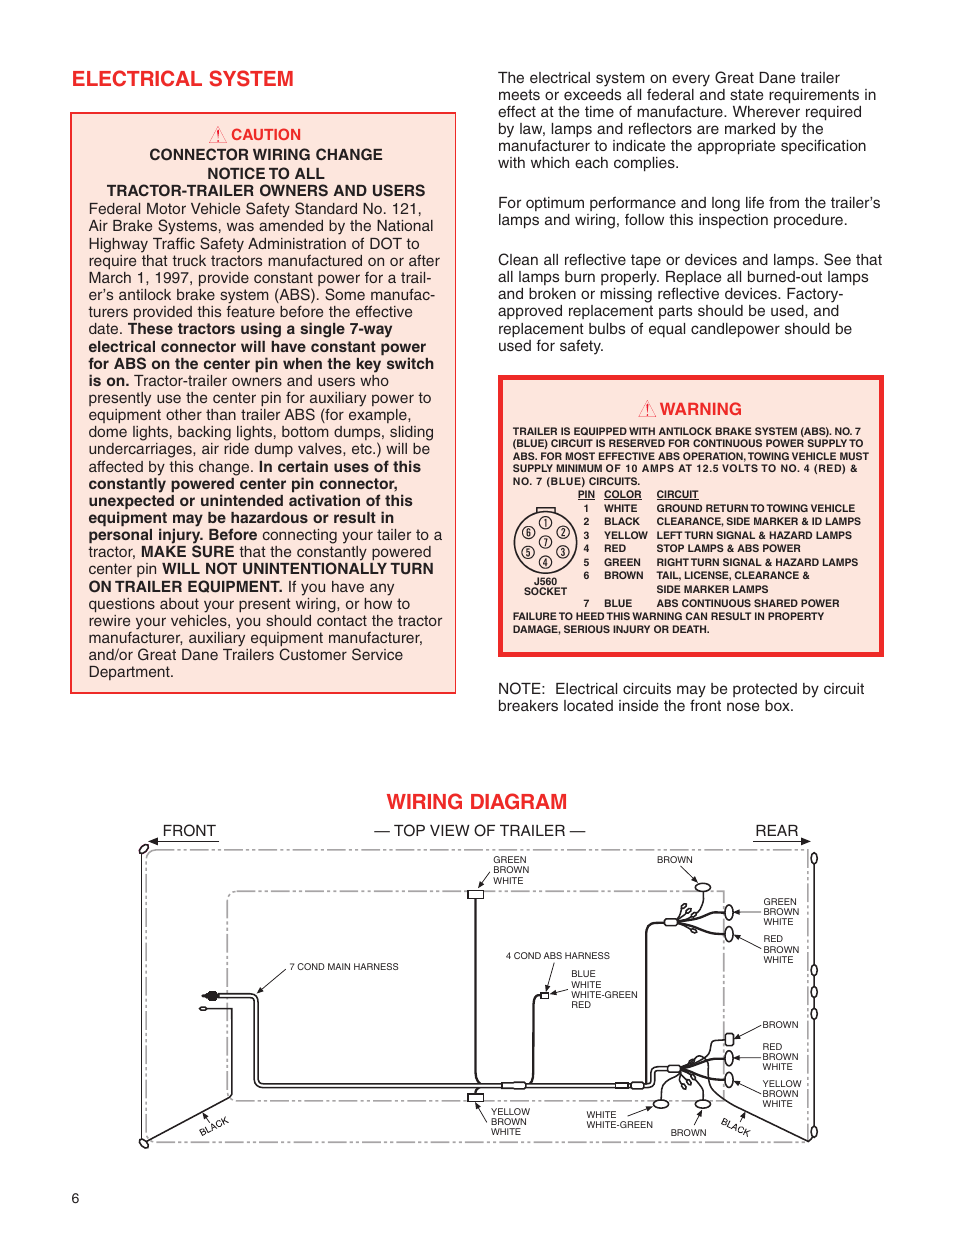 Electrical System Wiring Diagram Warning Great Dane 42101401 Parts Of An Electric Circuit User Manual Page 8 32